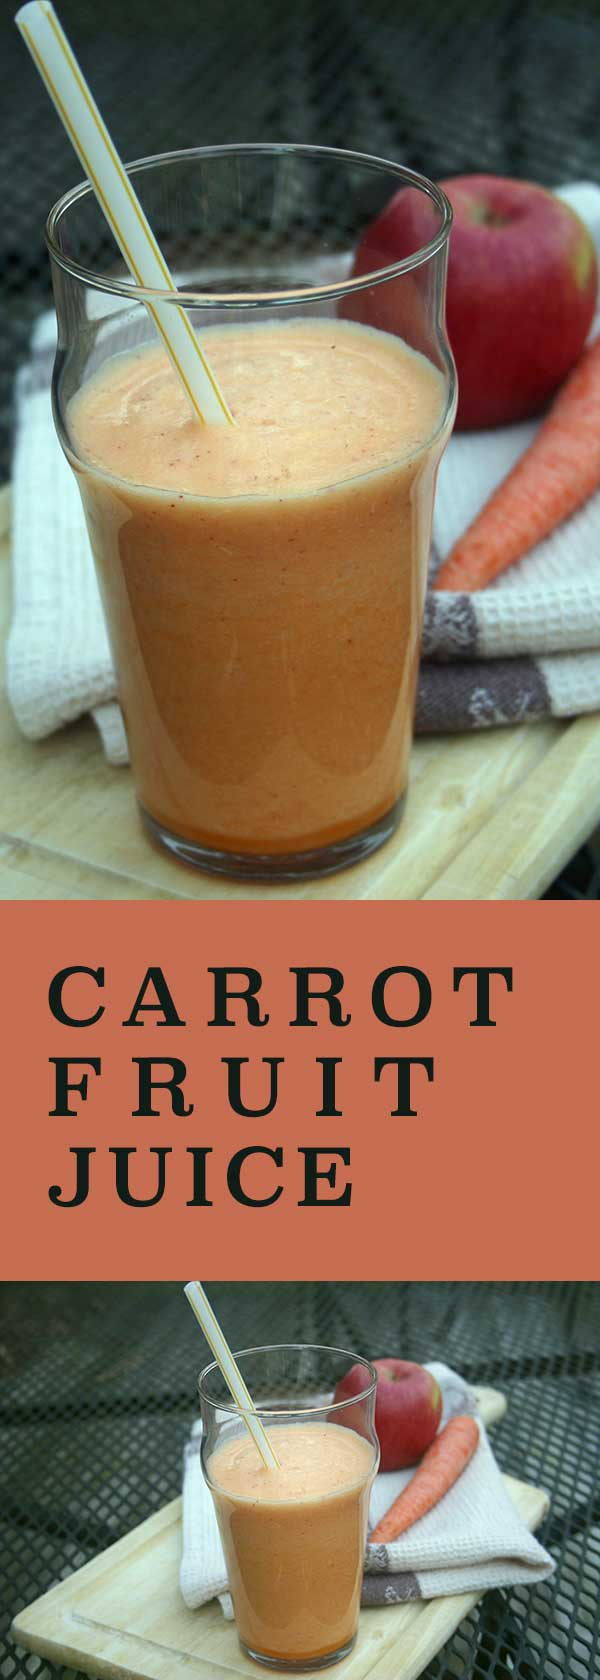 Carrot Fruit Juice - apple, pineapple, and orange flavors | diabeticfoodie.com